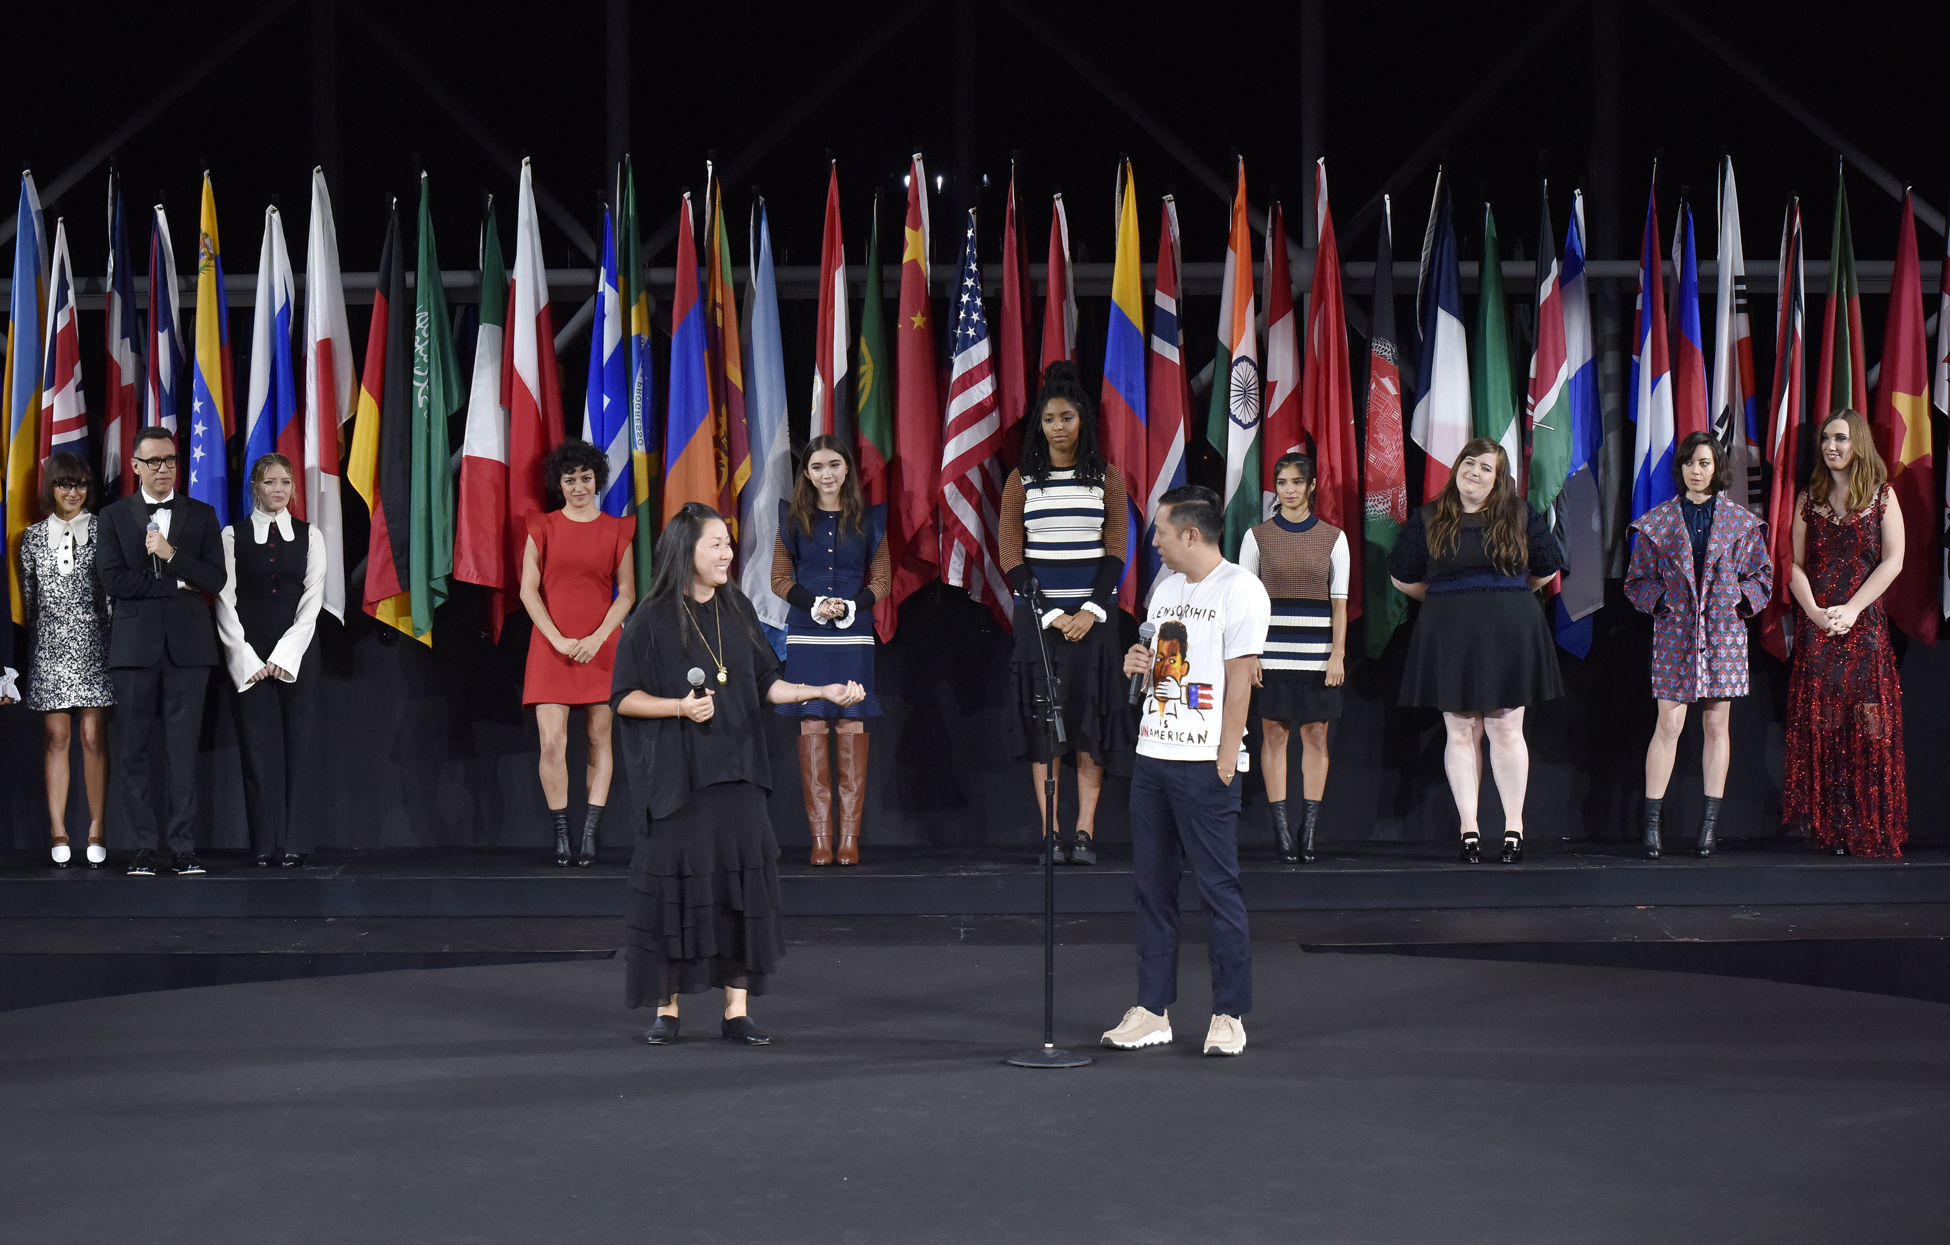 Opening Ceremony show, Runway, Spring Summer 2017, New York Fashion Week, USA - 11 Sep 2016